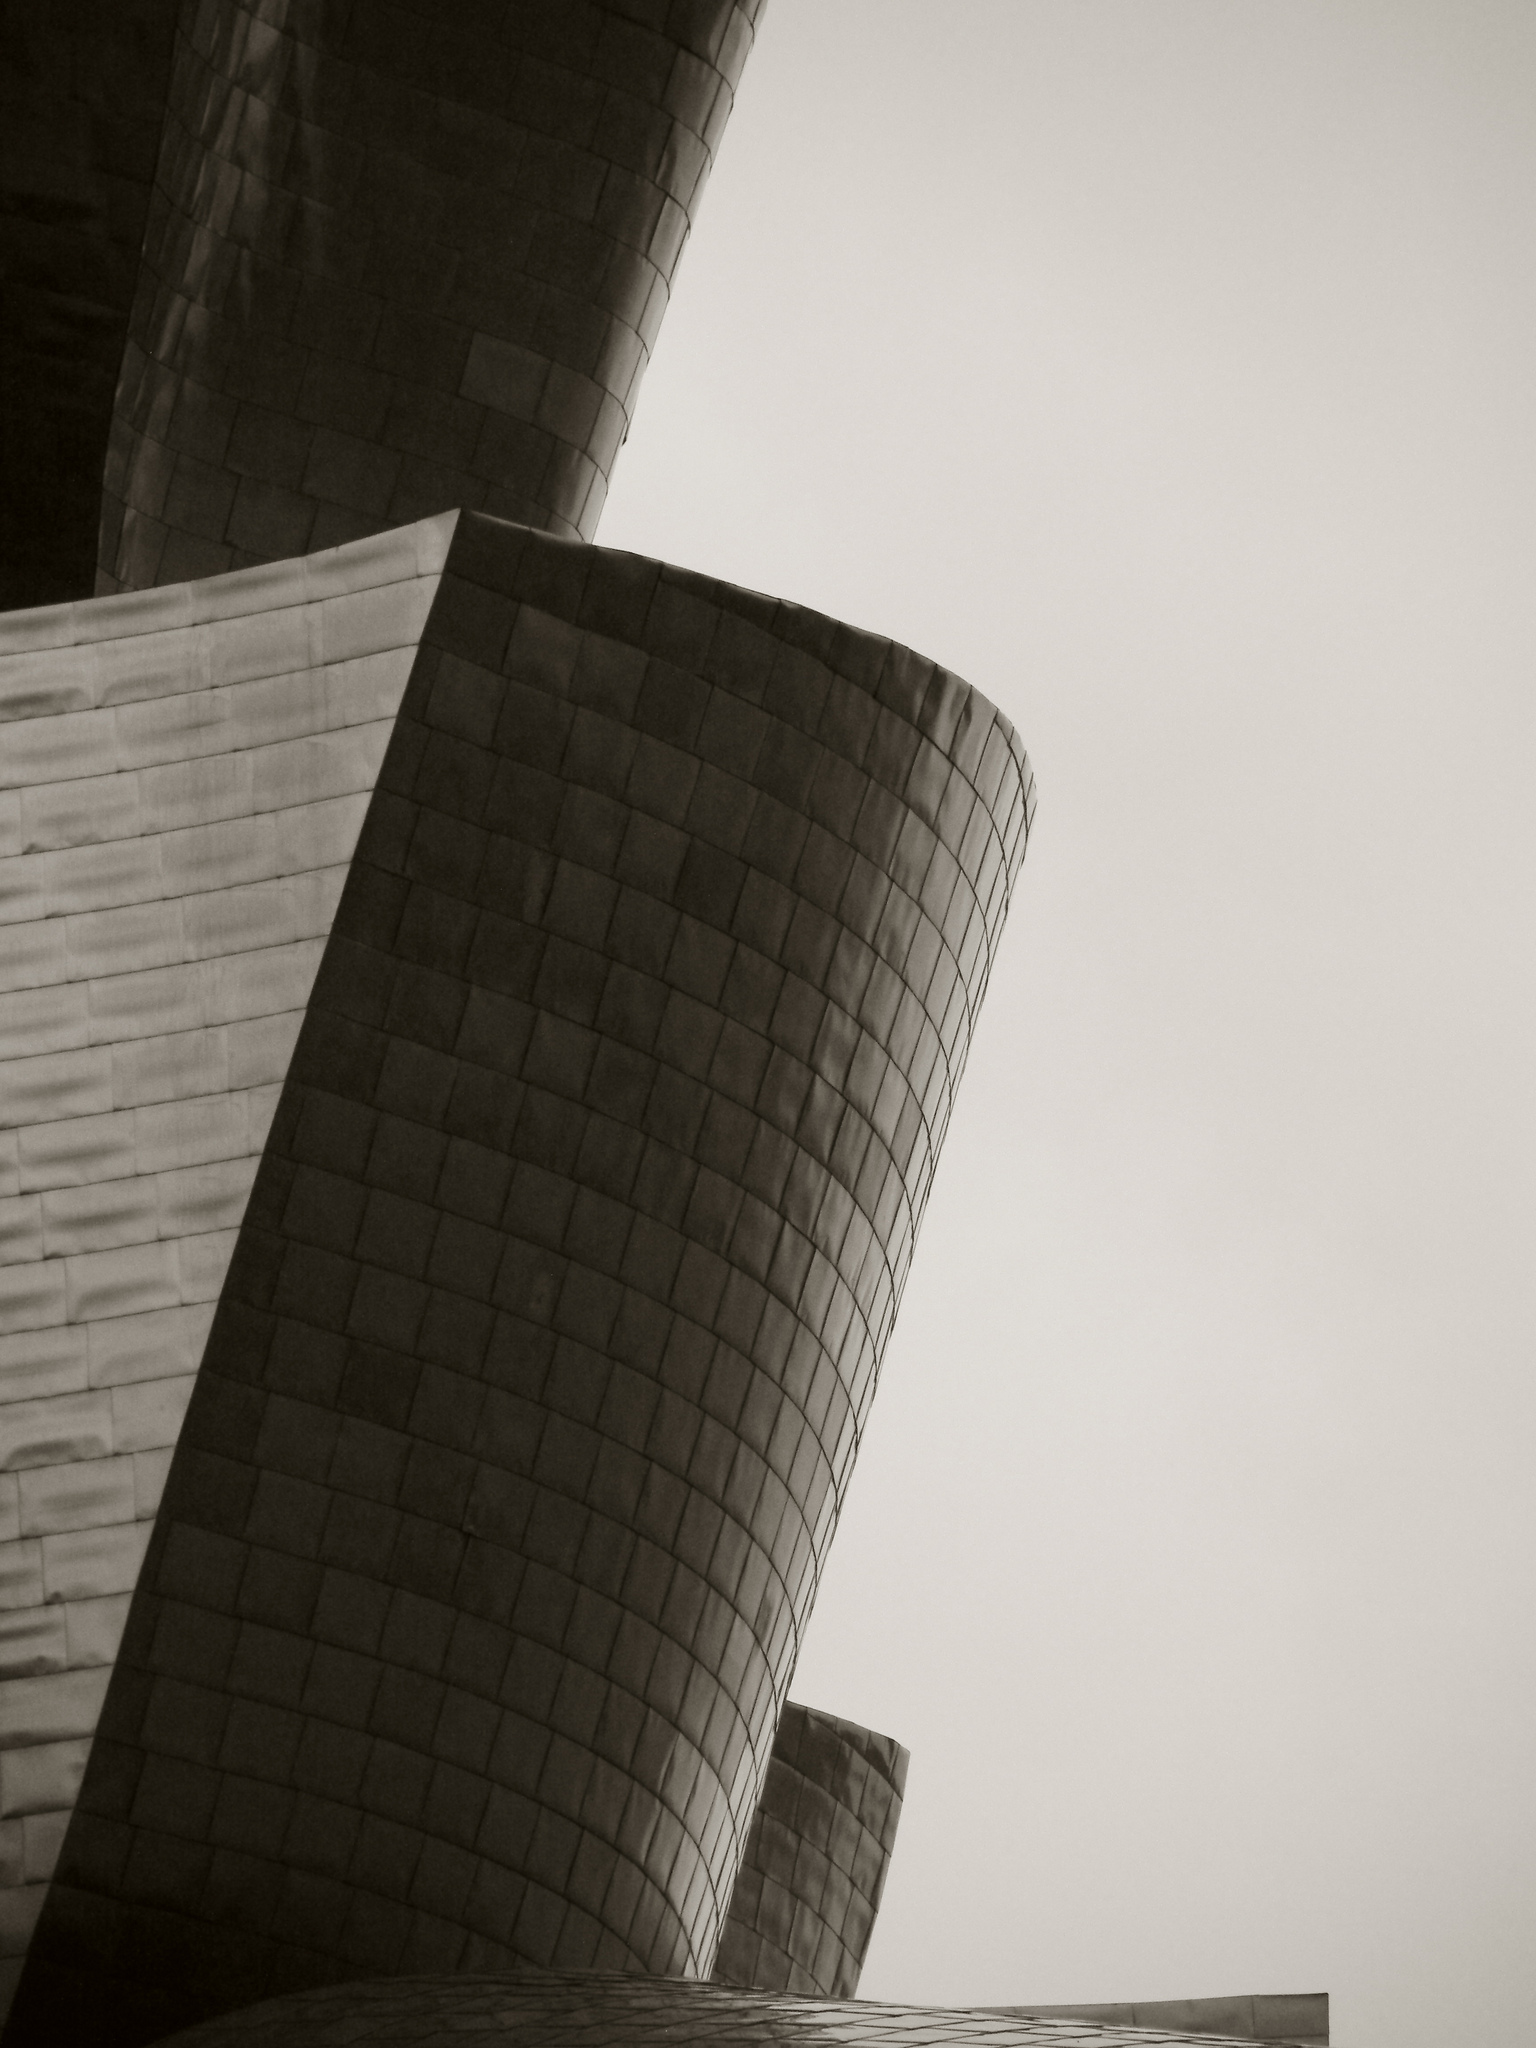 The Guggenheim Museum in Bilbao, Spain. Photo by Miguel A. Blanco on Flickr.